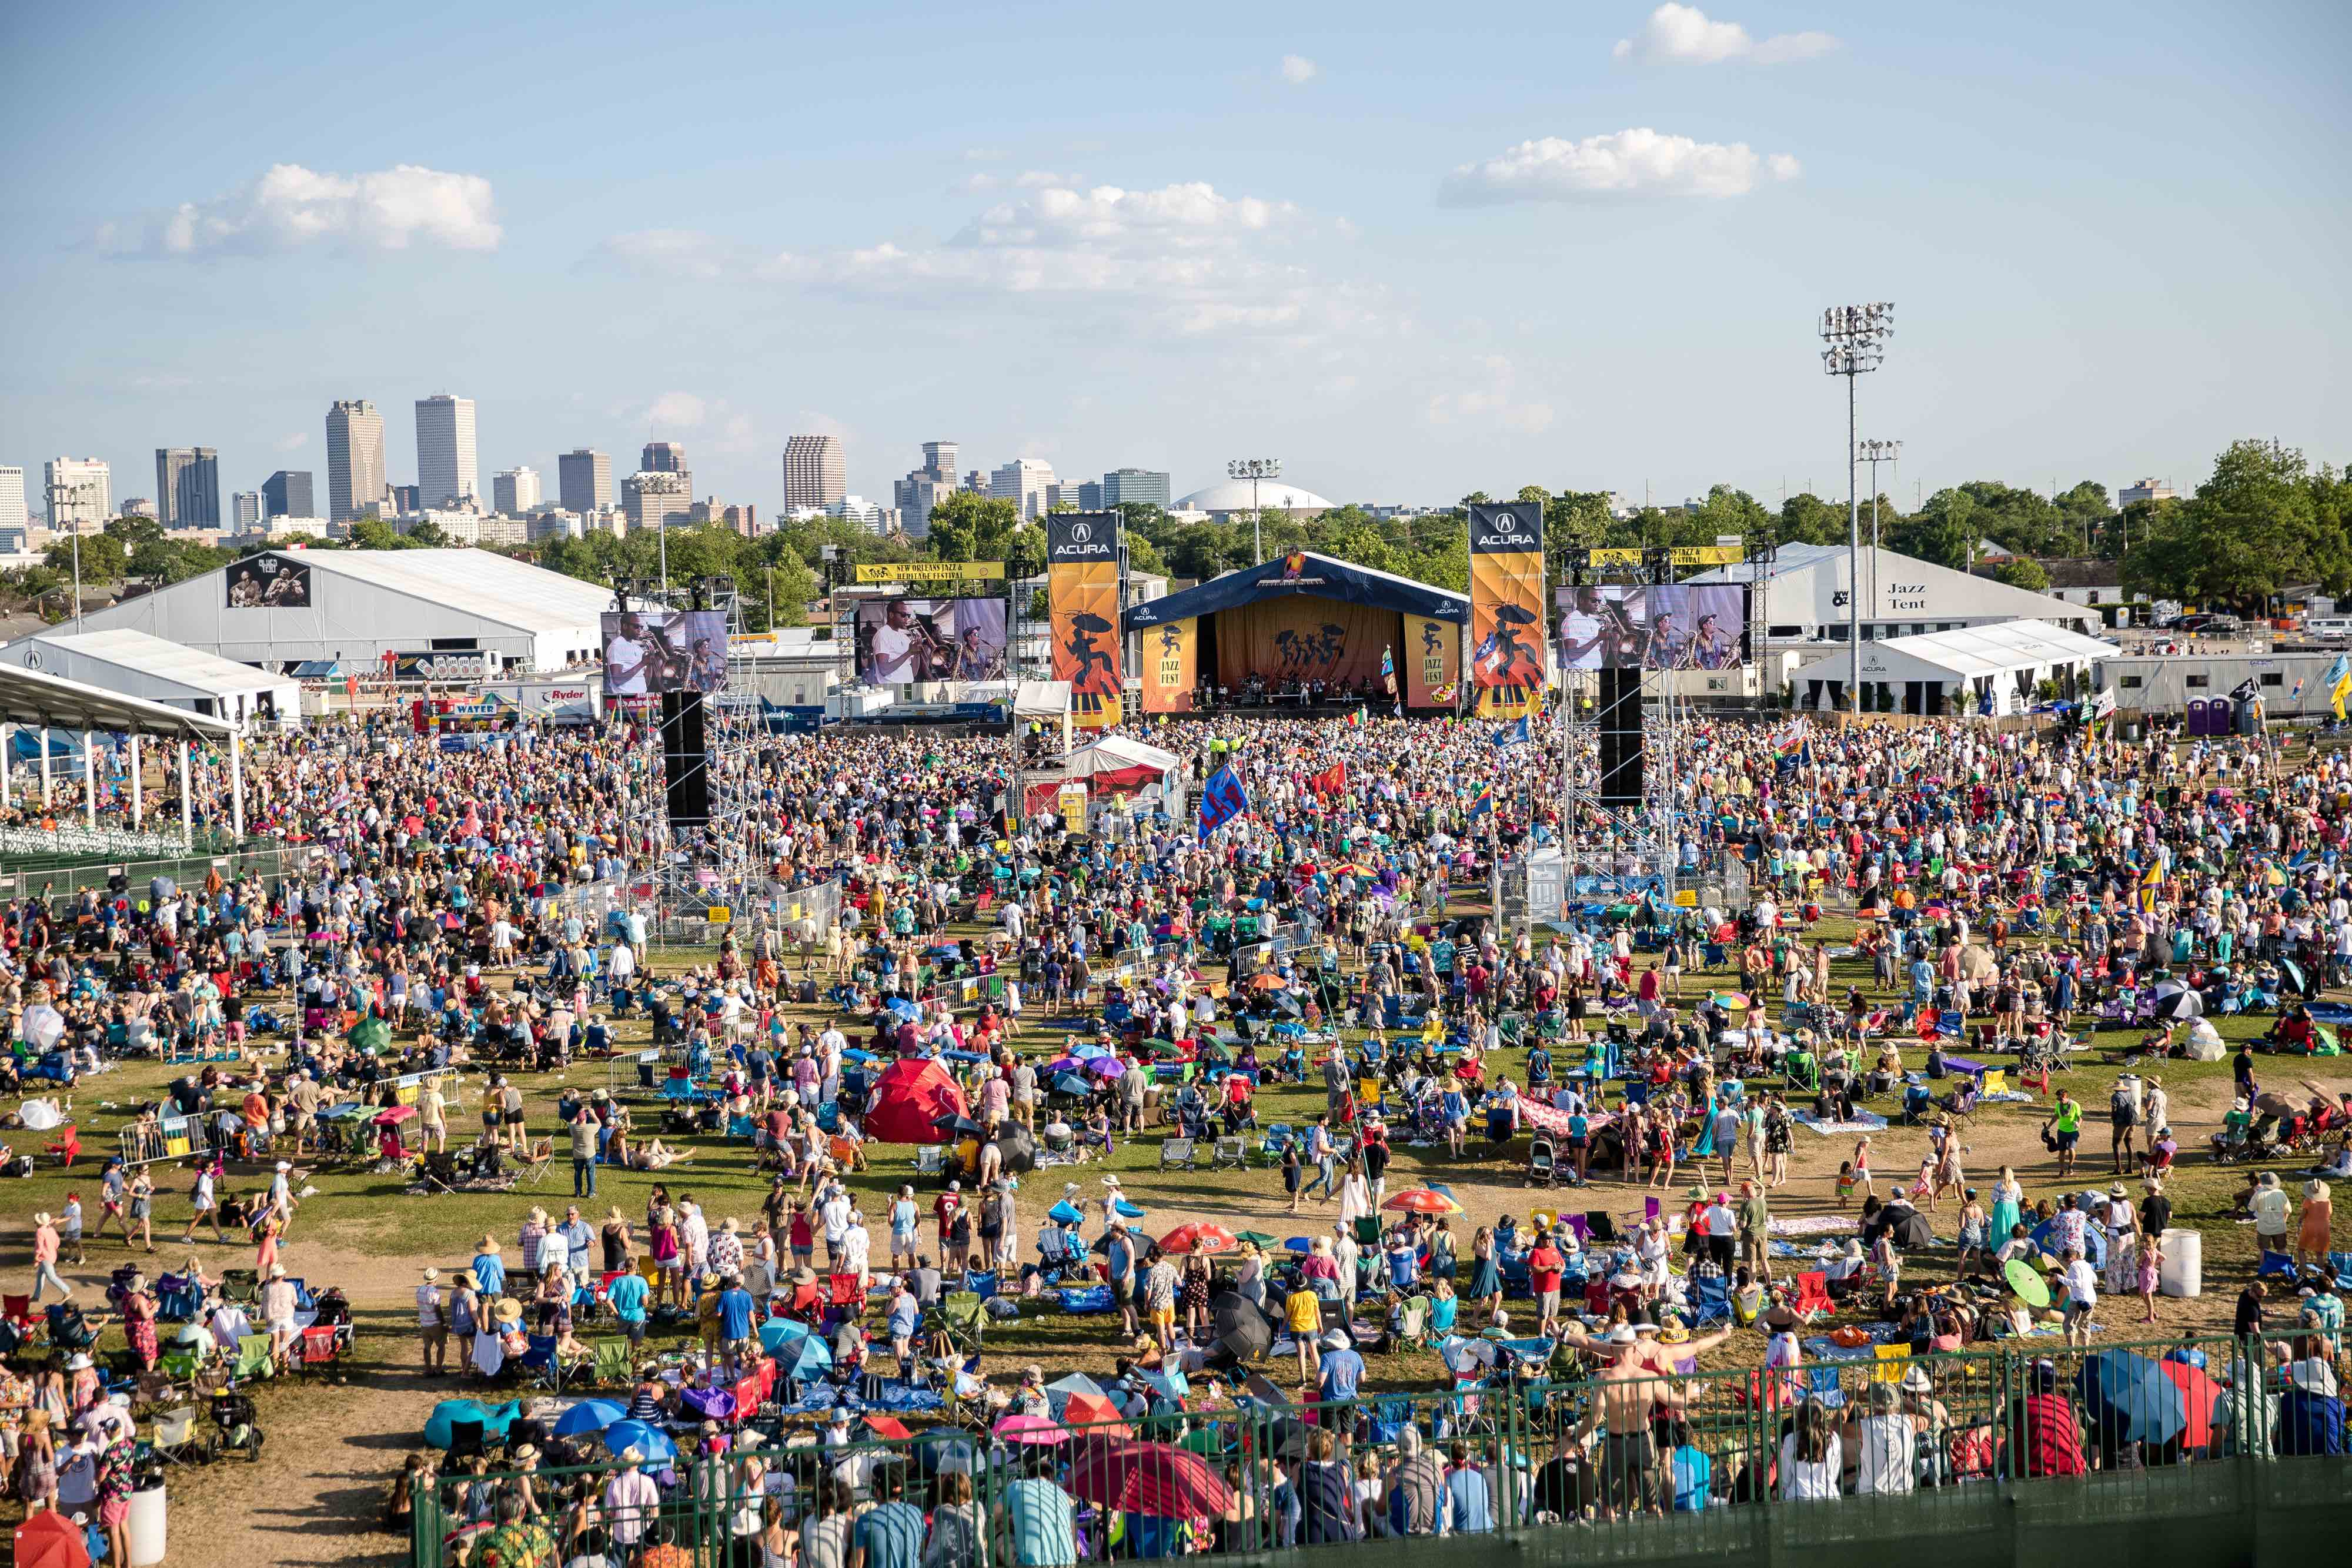 Six ways to get to Jazz Fest, ranked from least to most strenuous